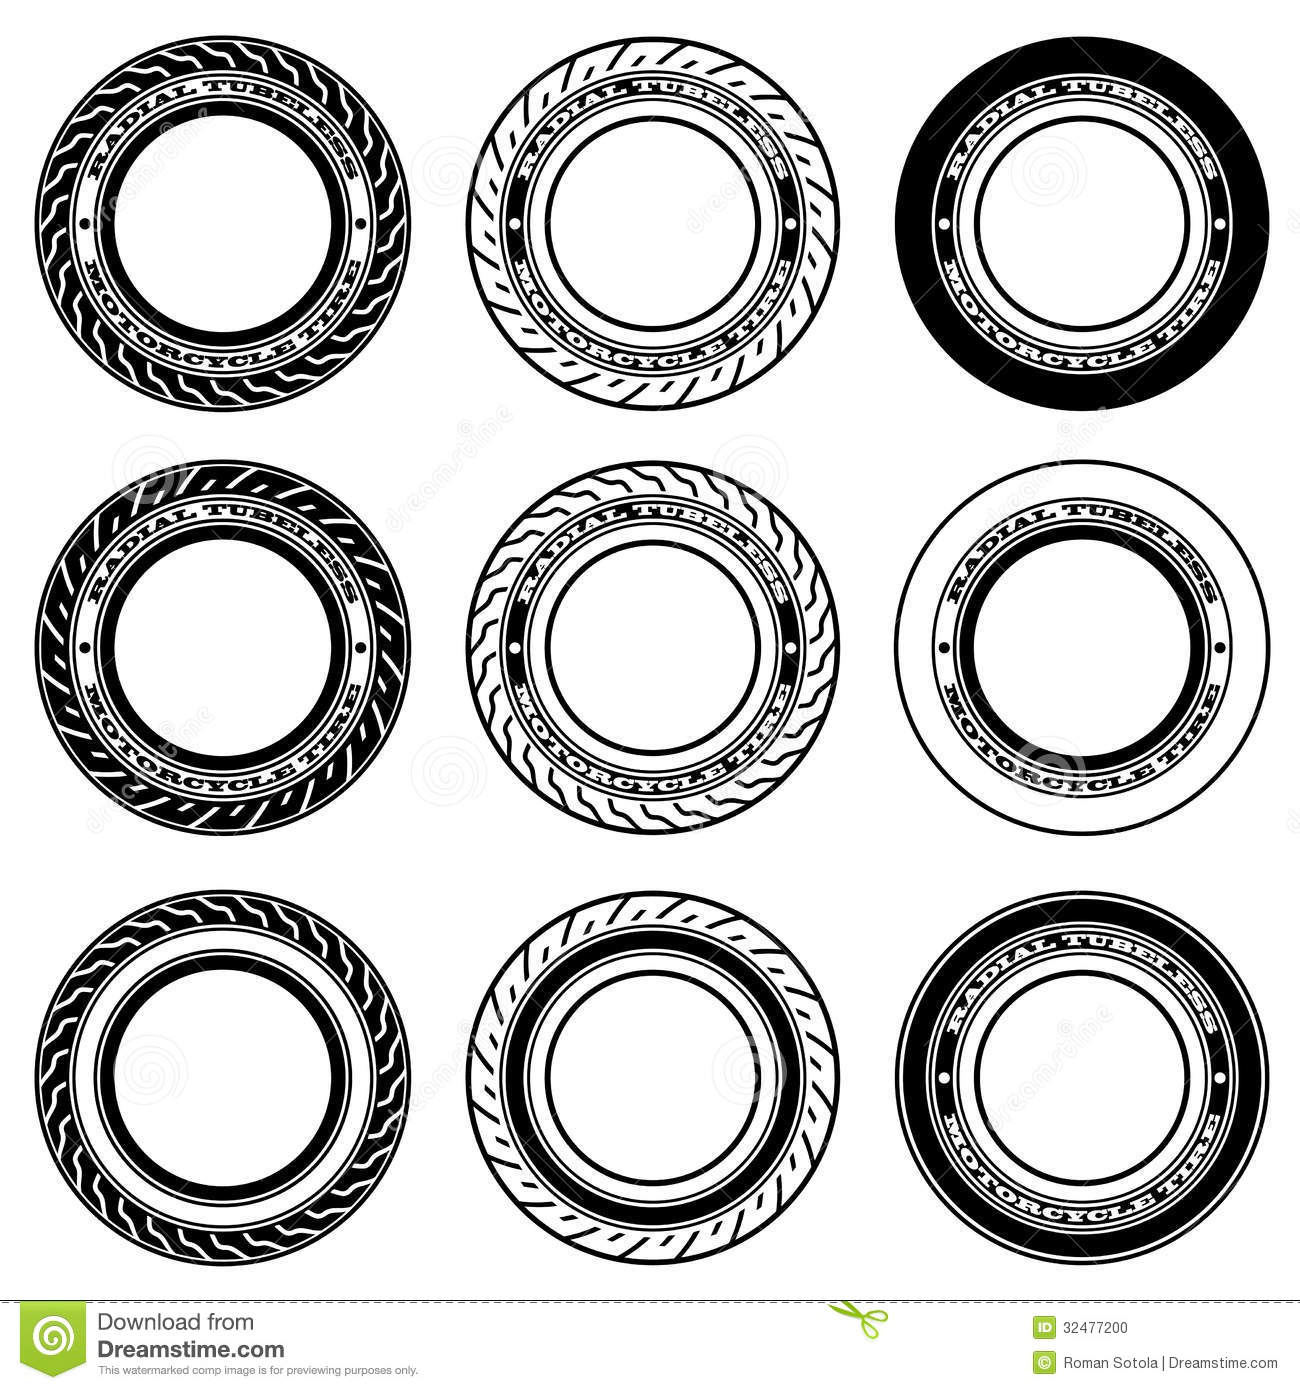 radial tubeless motorcycle tyre symbols stock photo